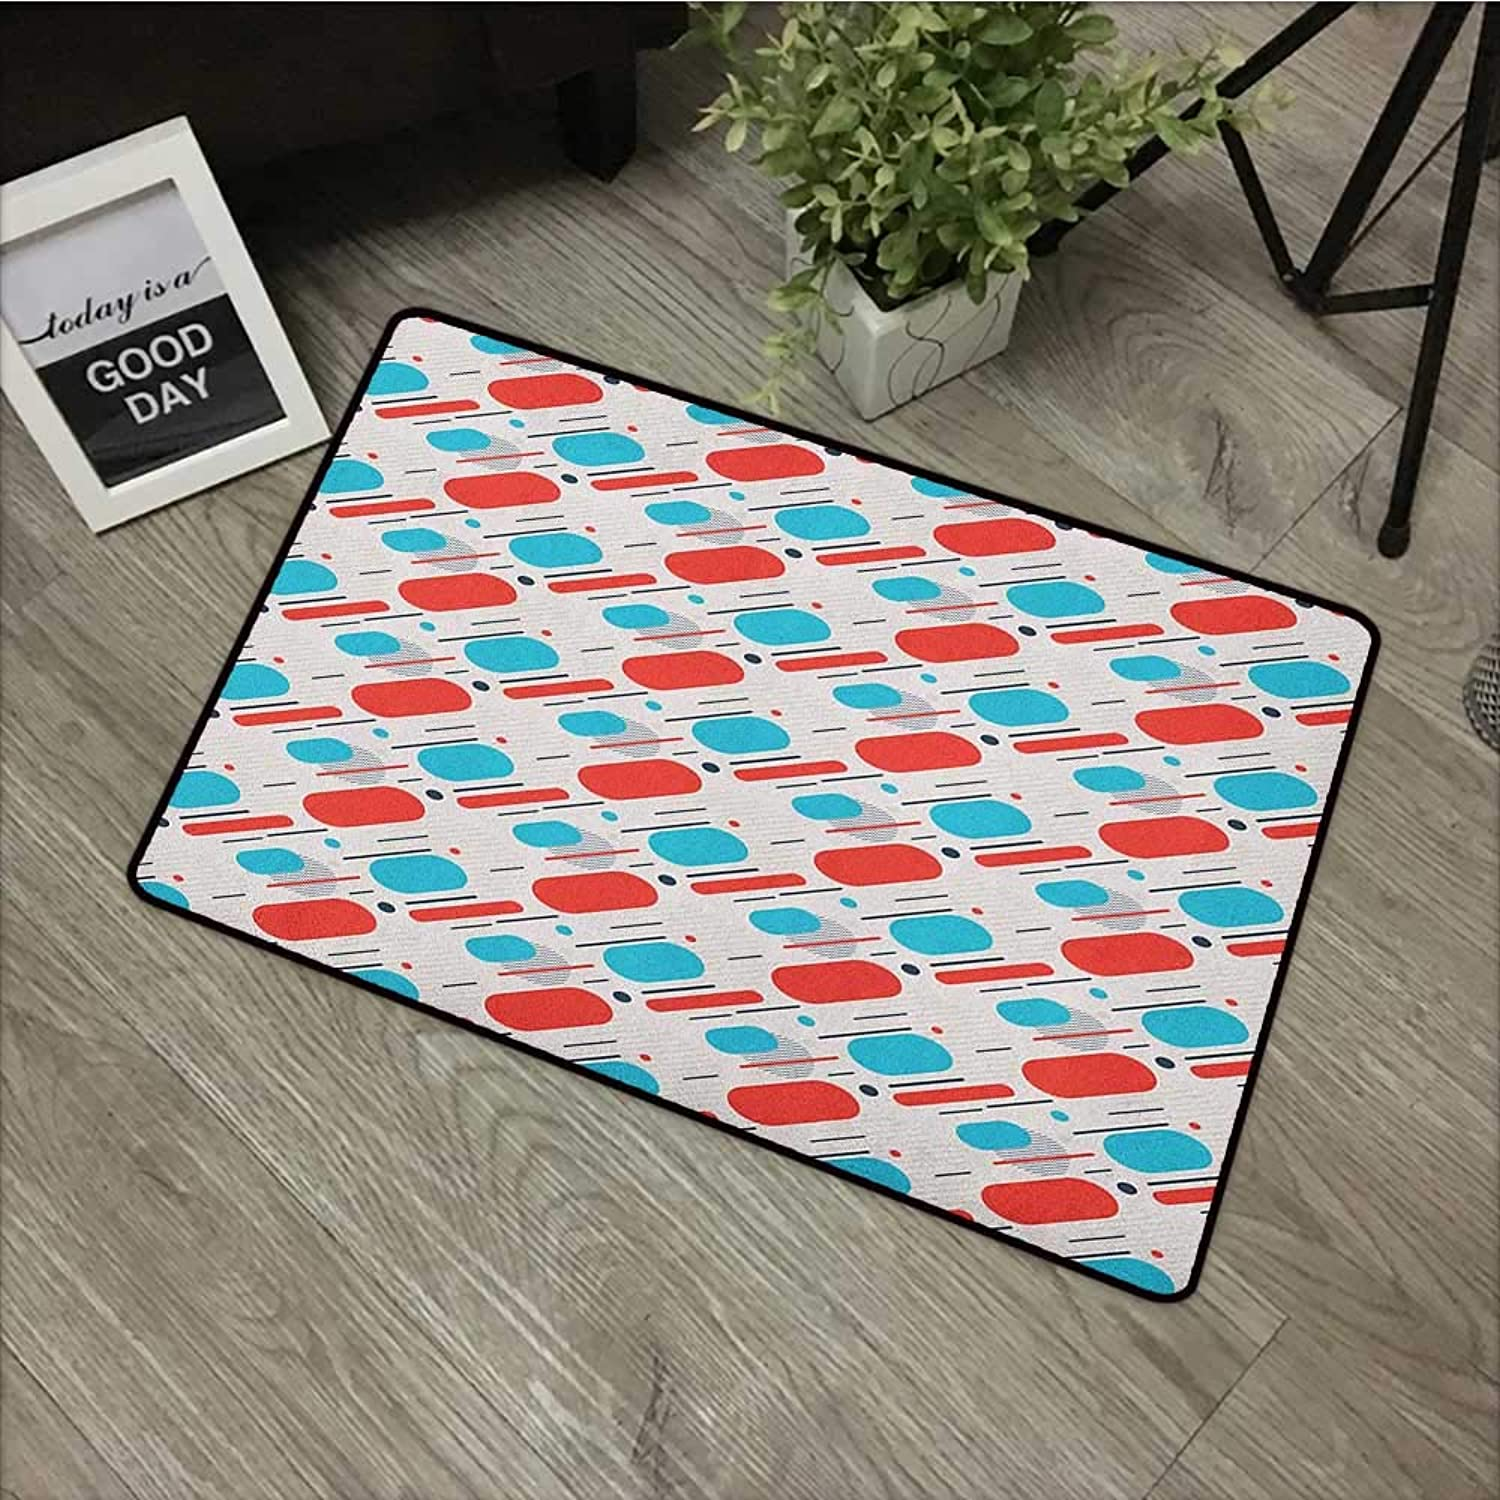 Printed door mat W35 x L59 INCH Geometric,Abstract Line and Stripes Abstract Minimalism Design Inspired Motion Illustration, Multicolor Easy to clean, no deformation, no fading Non-slip Door Mat Carpe